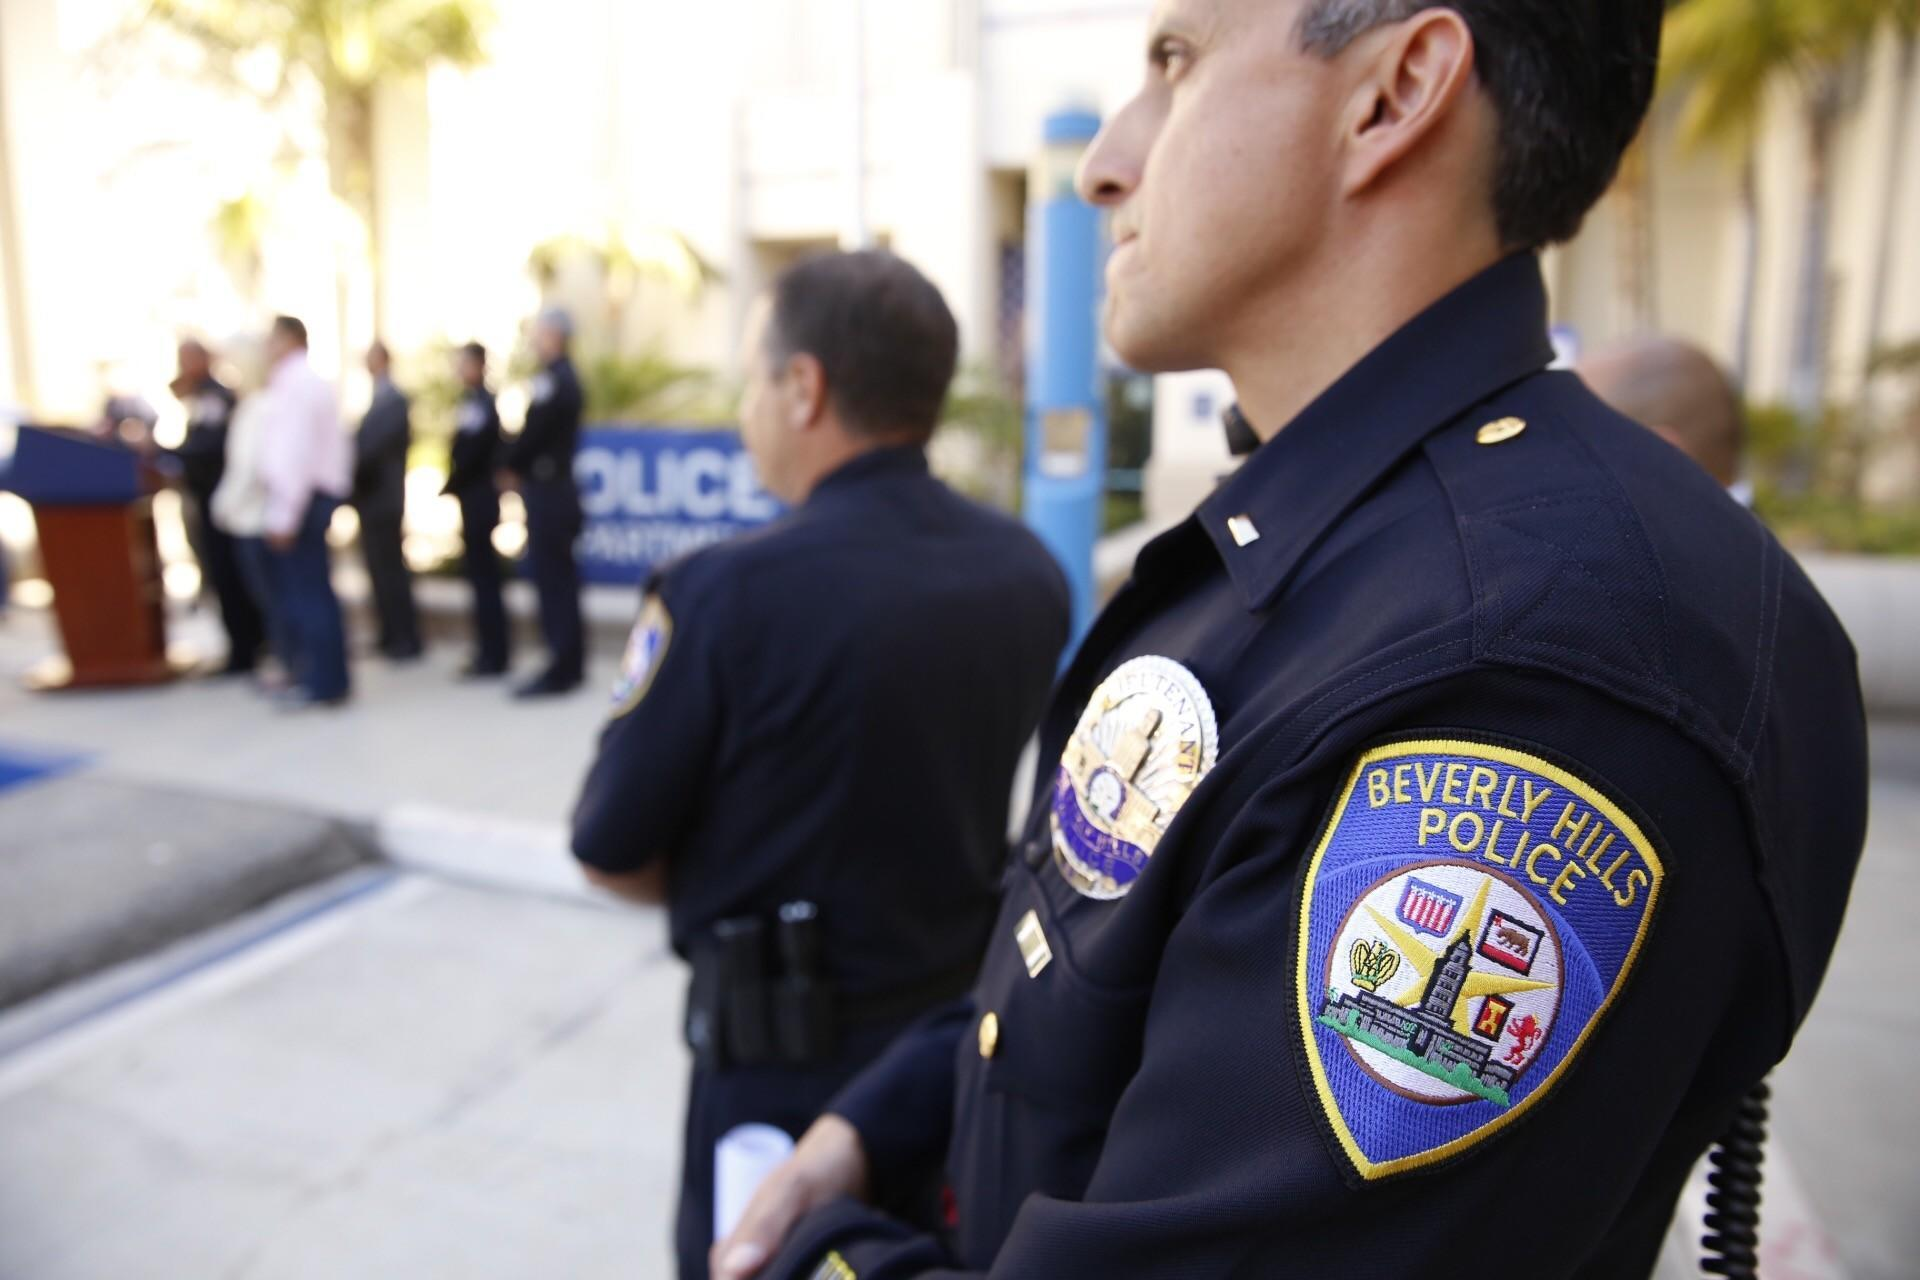 Beverly Hills police are investigating 12 Hollywood sexual assault allegations